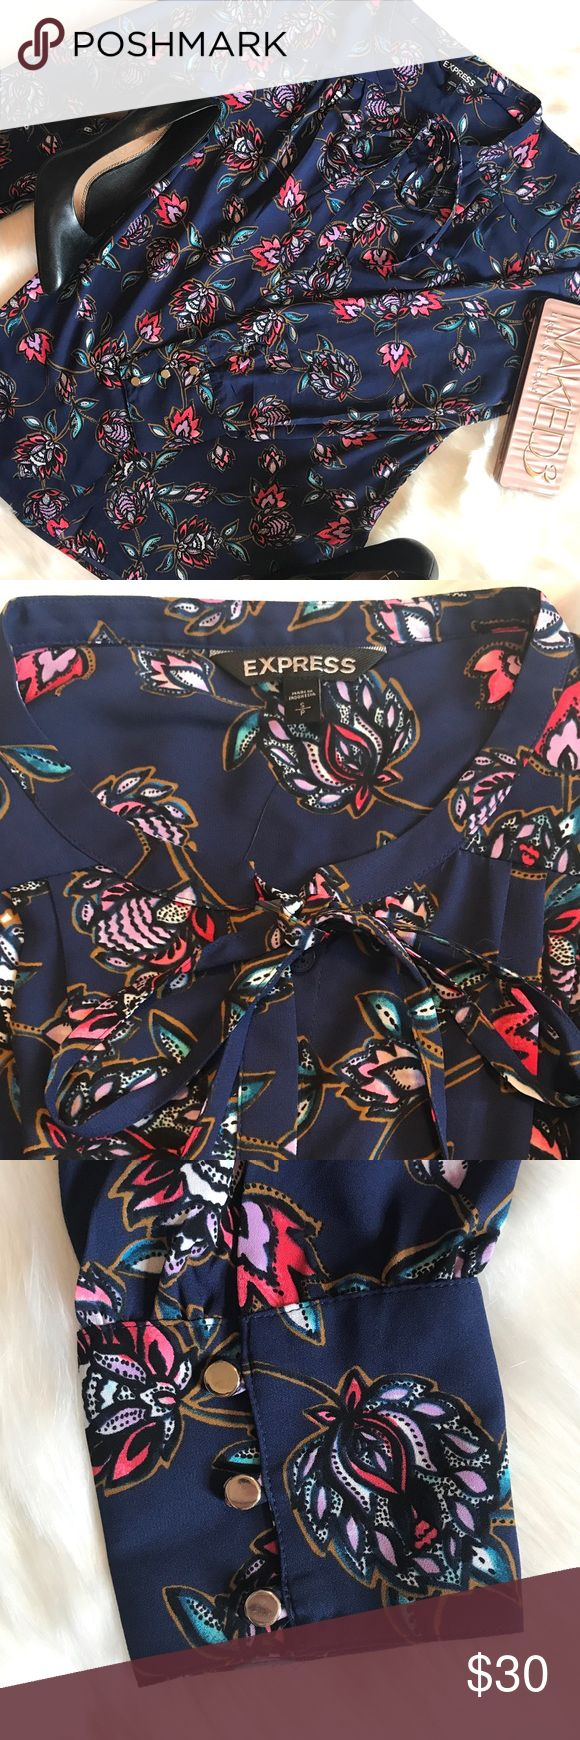 Express Tie Neck Blouse Beautiful floral tie neck blouse that can be worn tied or undone. Pairs nicely with black dress pants and pumps! 100% polyester. NWT Express Tops Blouses